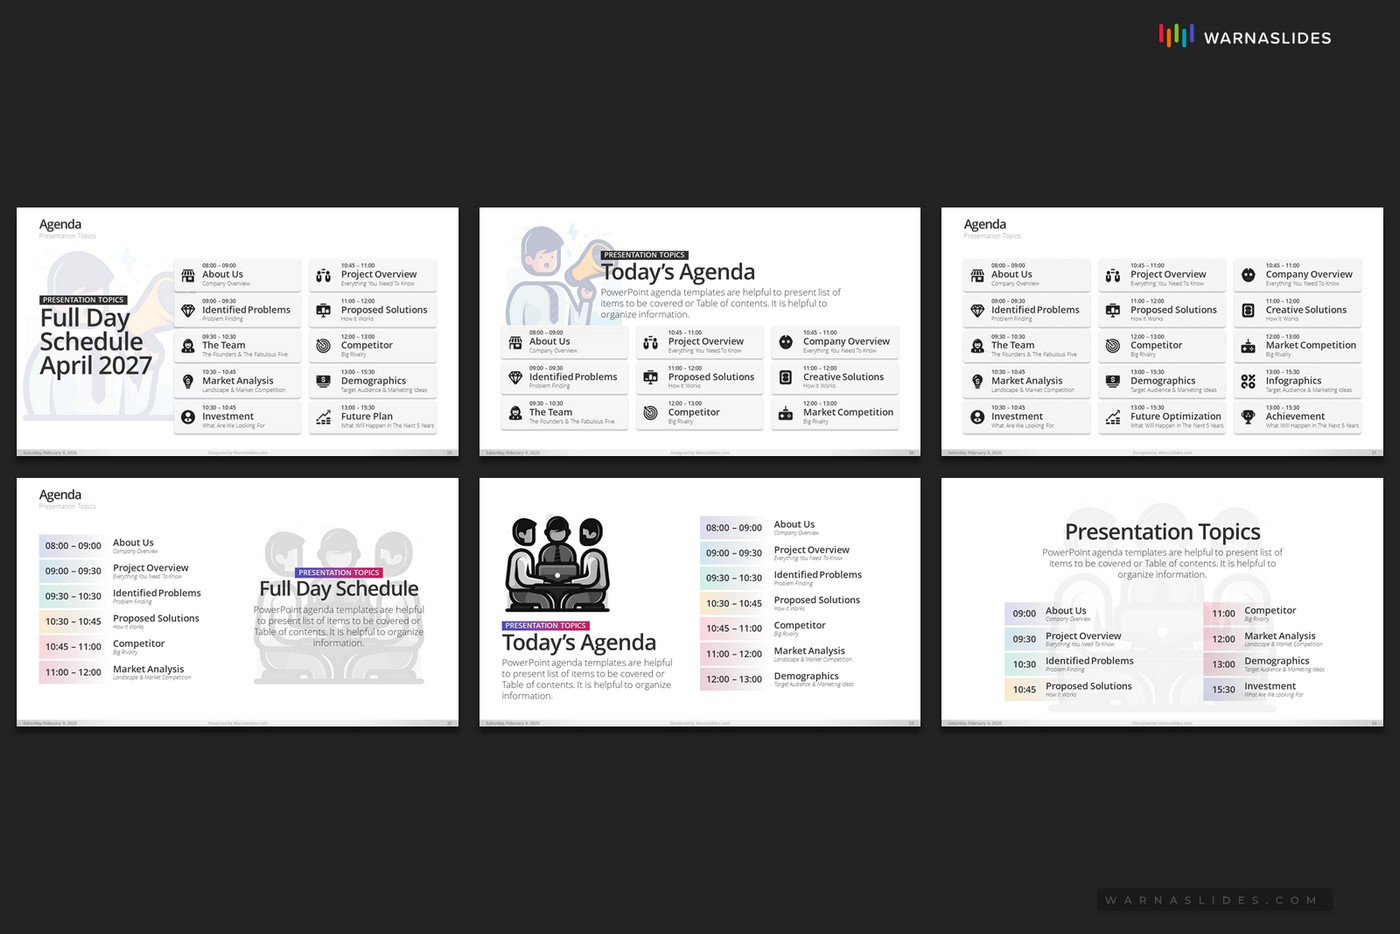 Agenda-Meeting-PowerPoint-Template-2020-for-Business-Pitch-Deck-Professional-Creative-Presentation-by-Warna-Slides-011